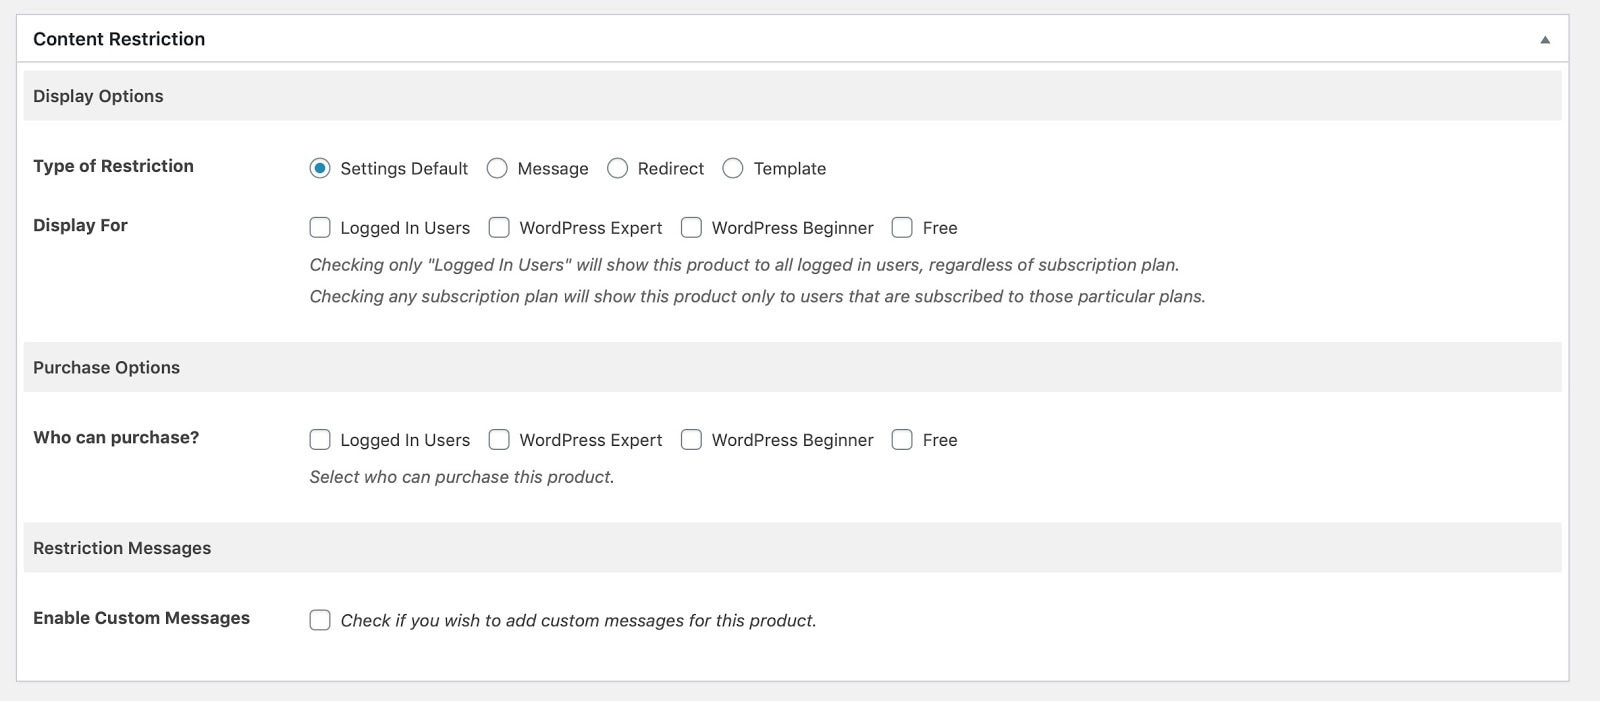 Screenshot of content restrictions for a WooCommerce product